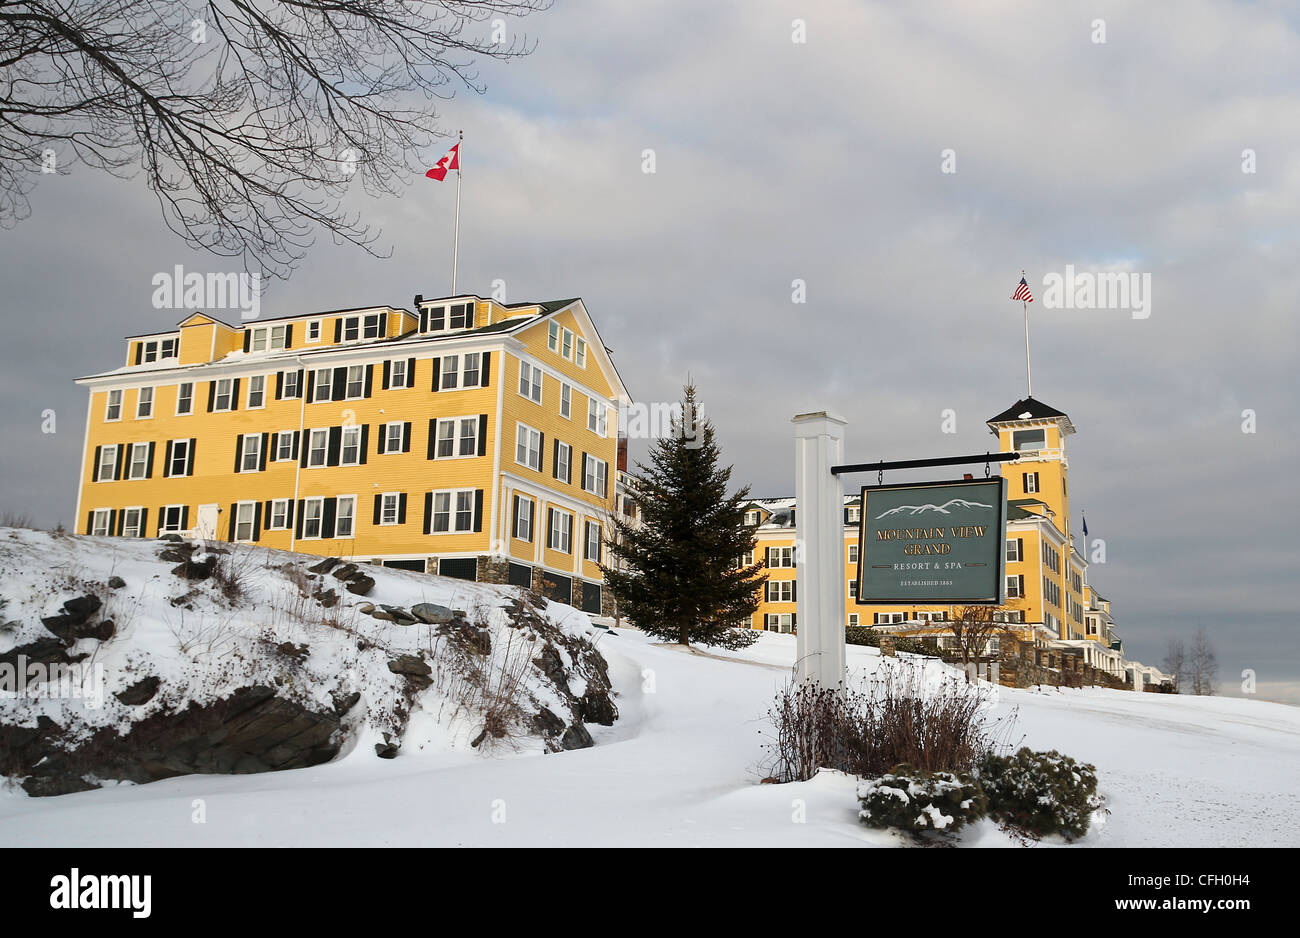 A Winter View Of The Mountain View Grand Resort And Spa A Historic